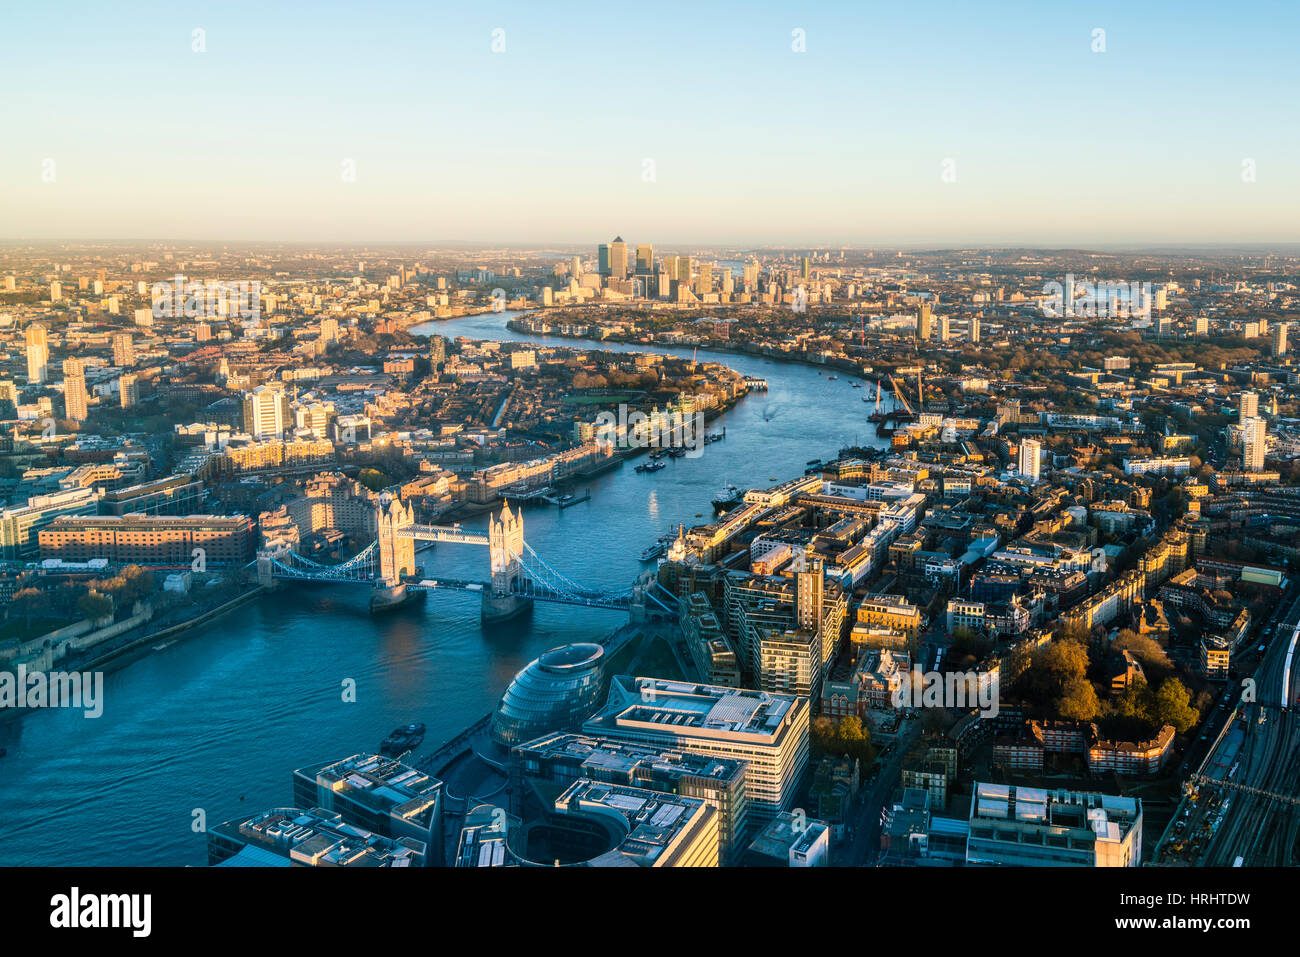 High view of London skyline along the River Thames from Tower Bridge to Canary Wharf, London, England, United Kingdom - Stock Image